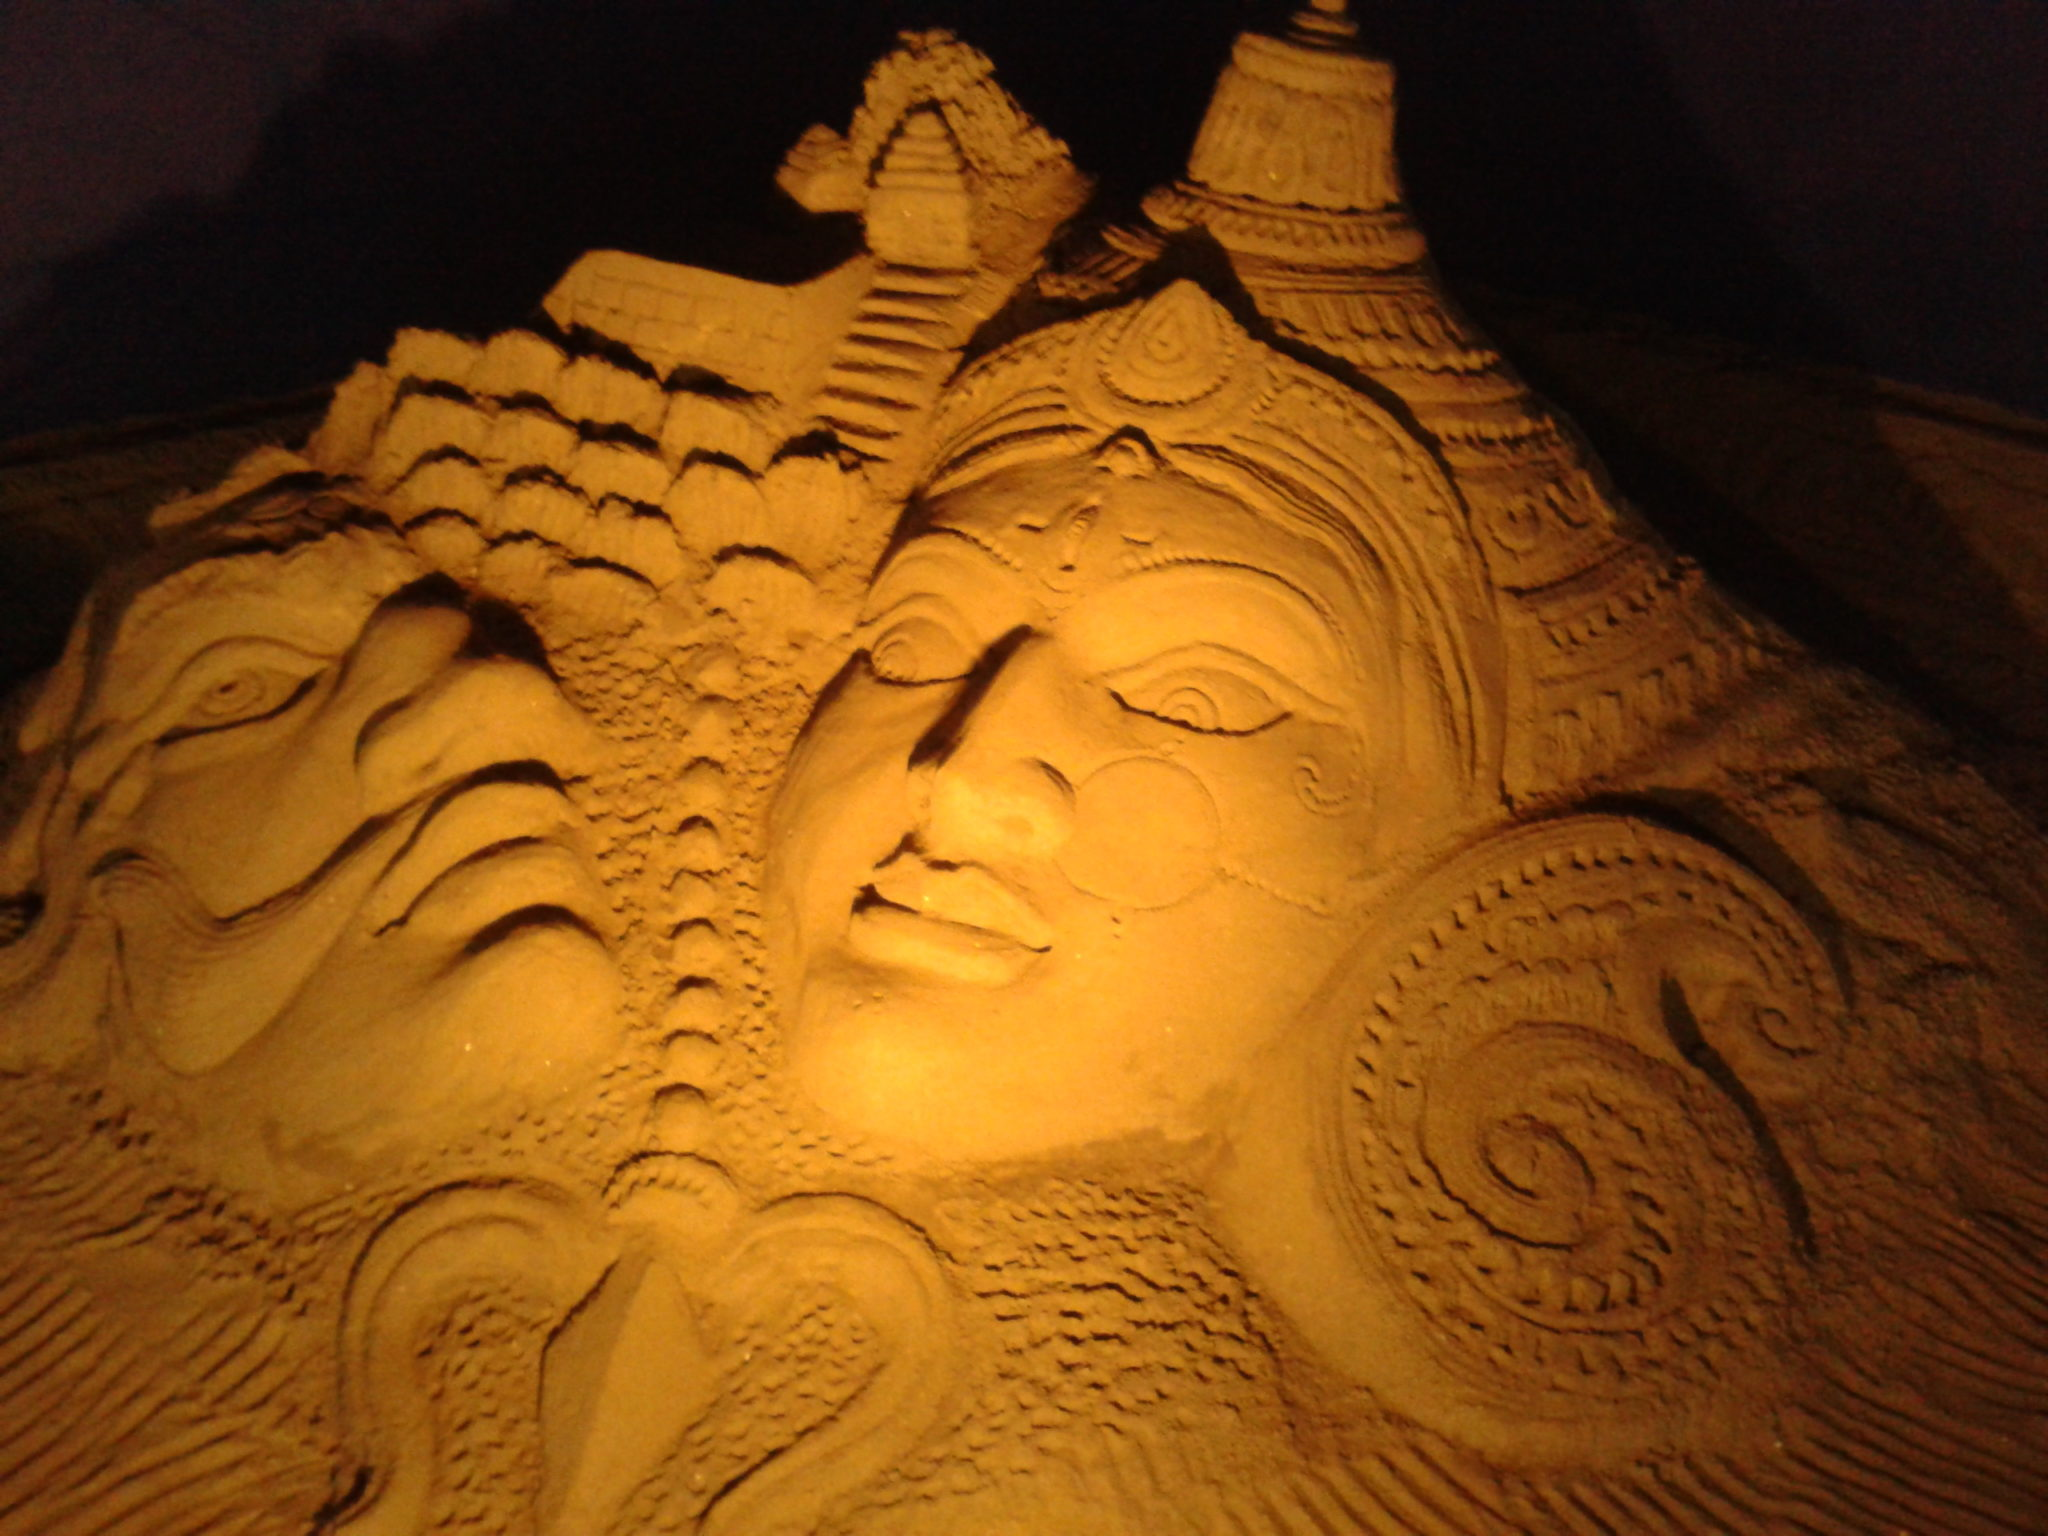 National Sand Art Festival (NSA)